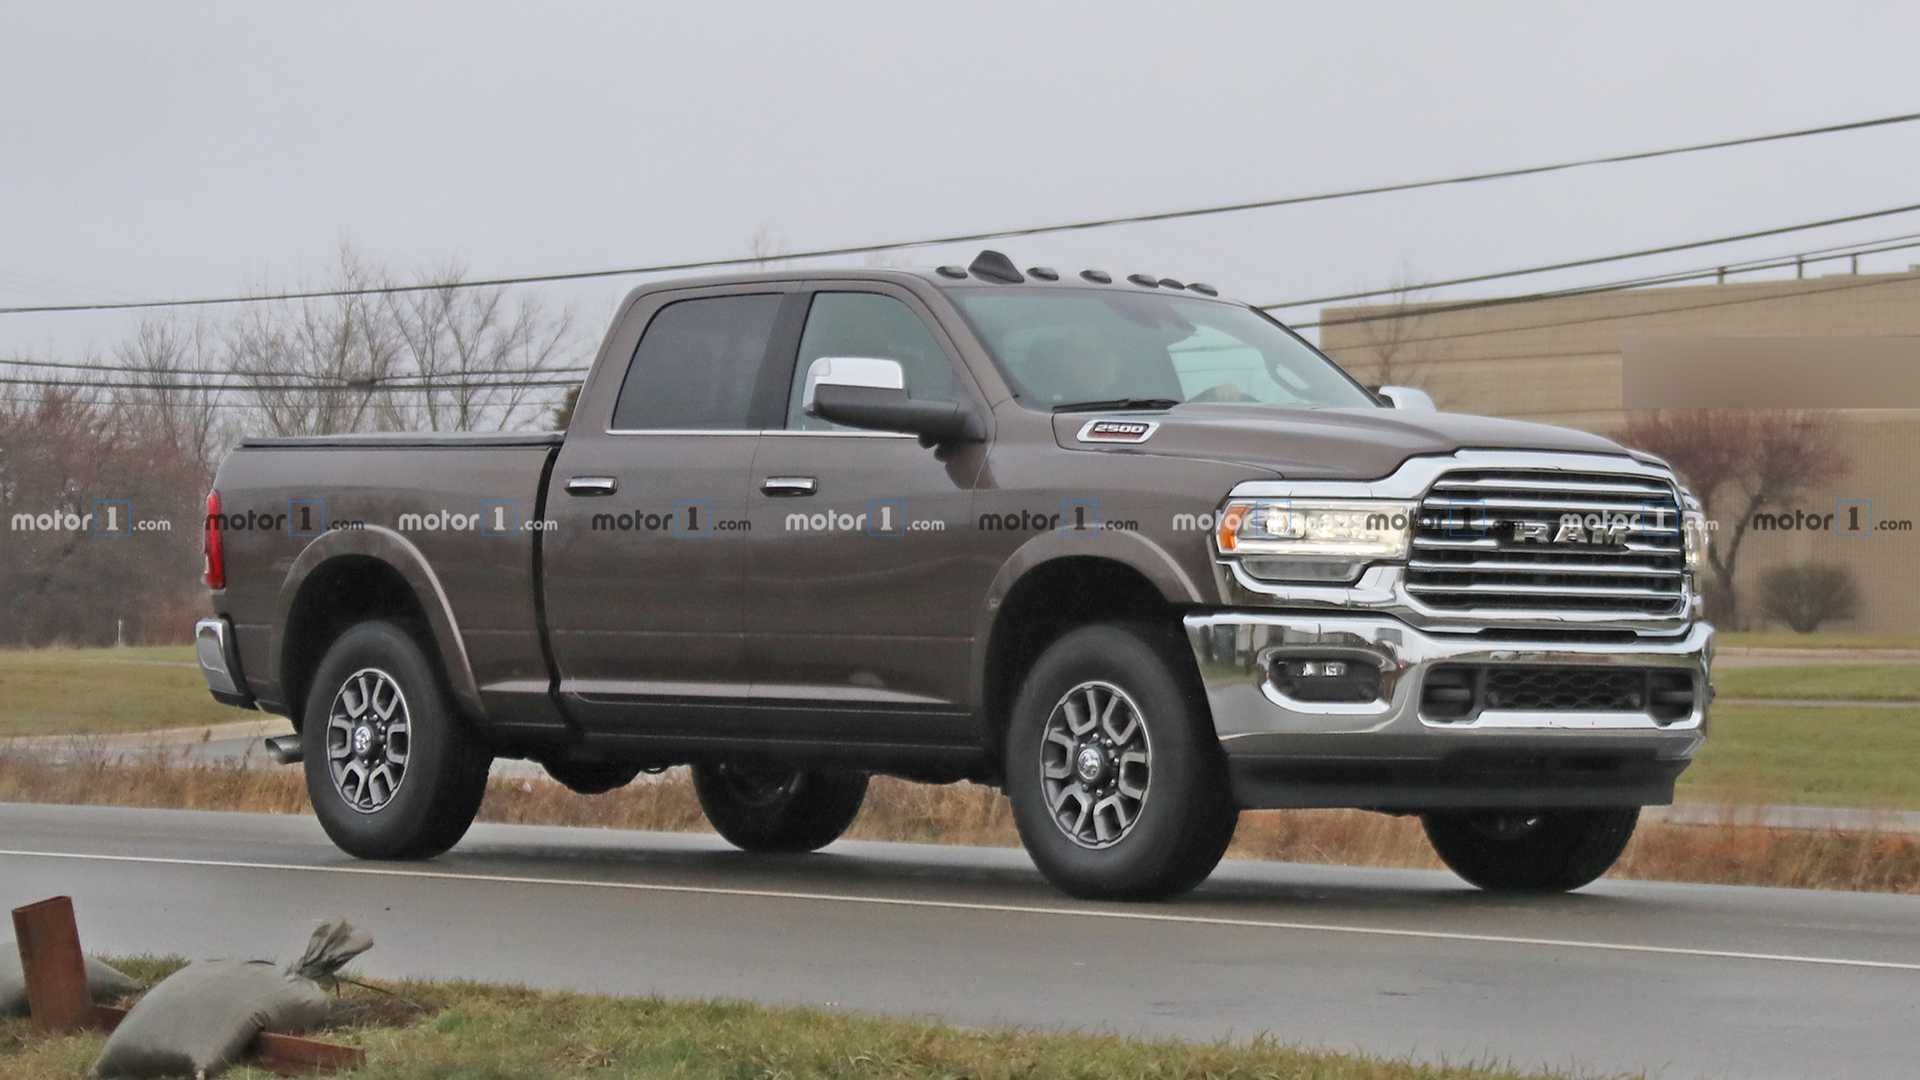 68 A 2020 Dodge Ram Truck Ratings